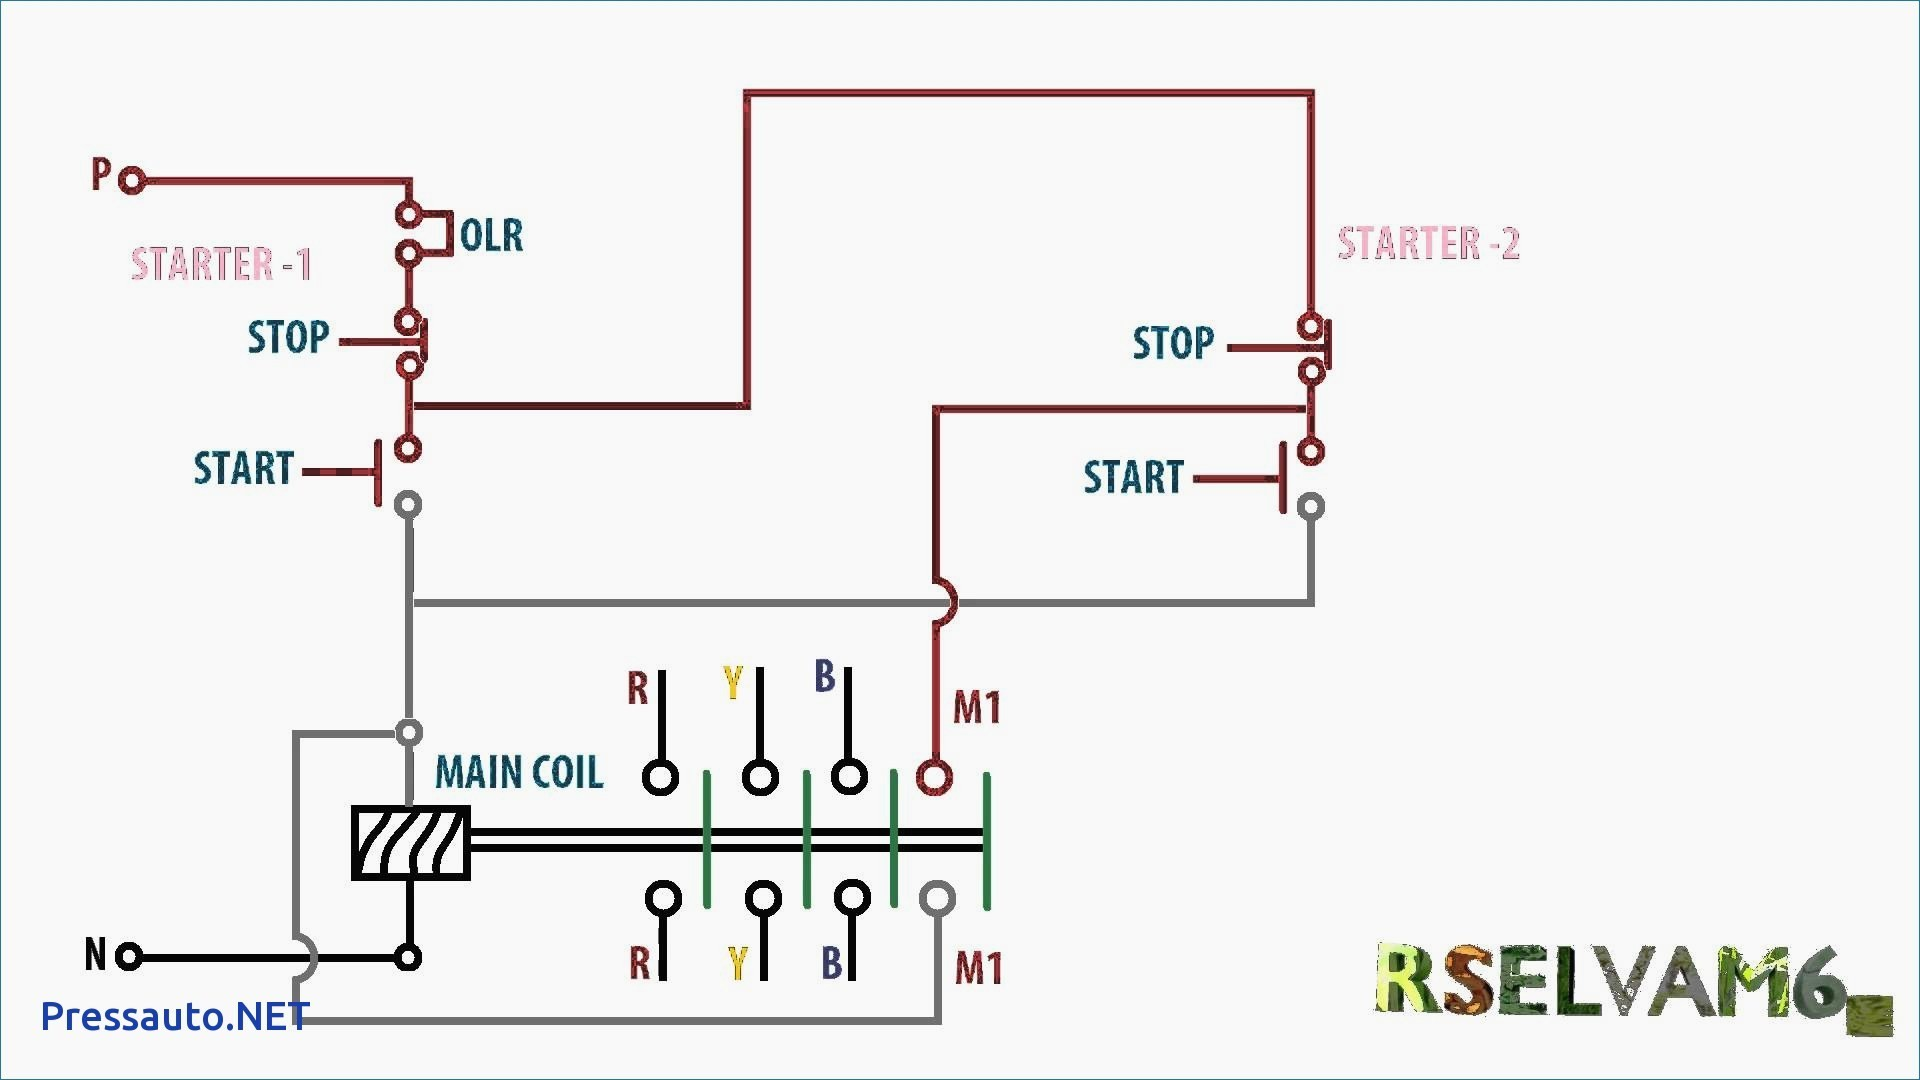 Single Phase Reversing Motor Starter Wiring Diagram from detoxicrecenze.com